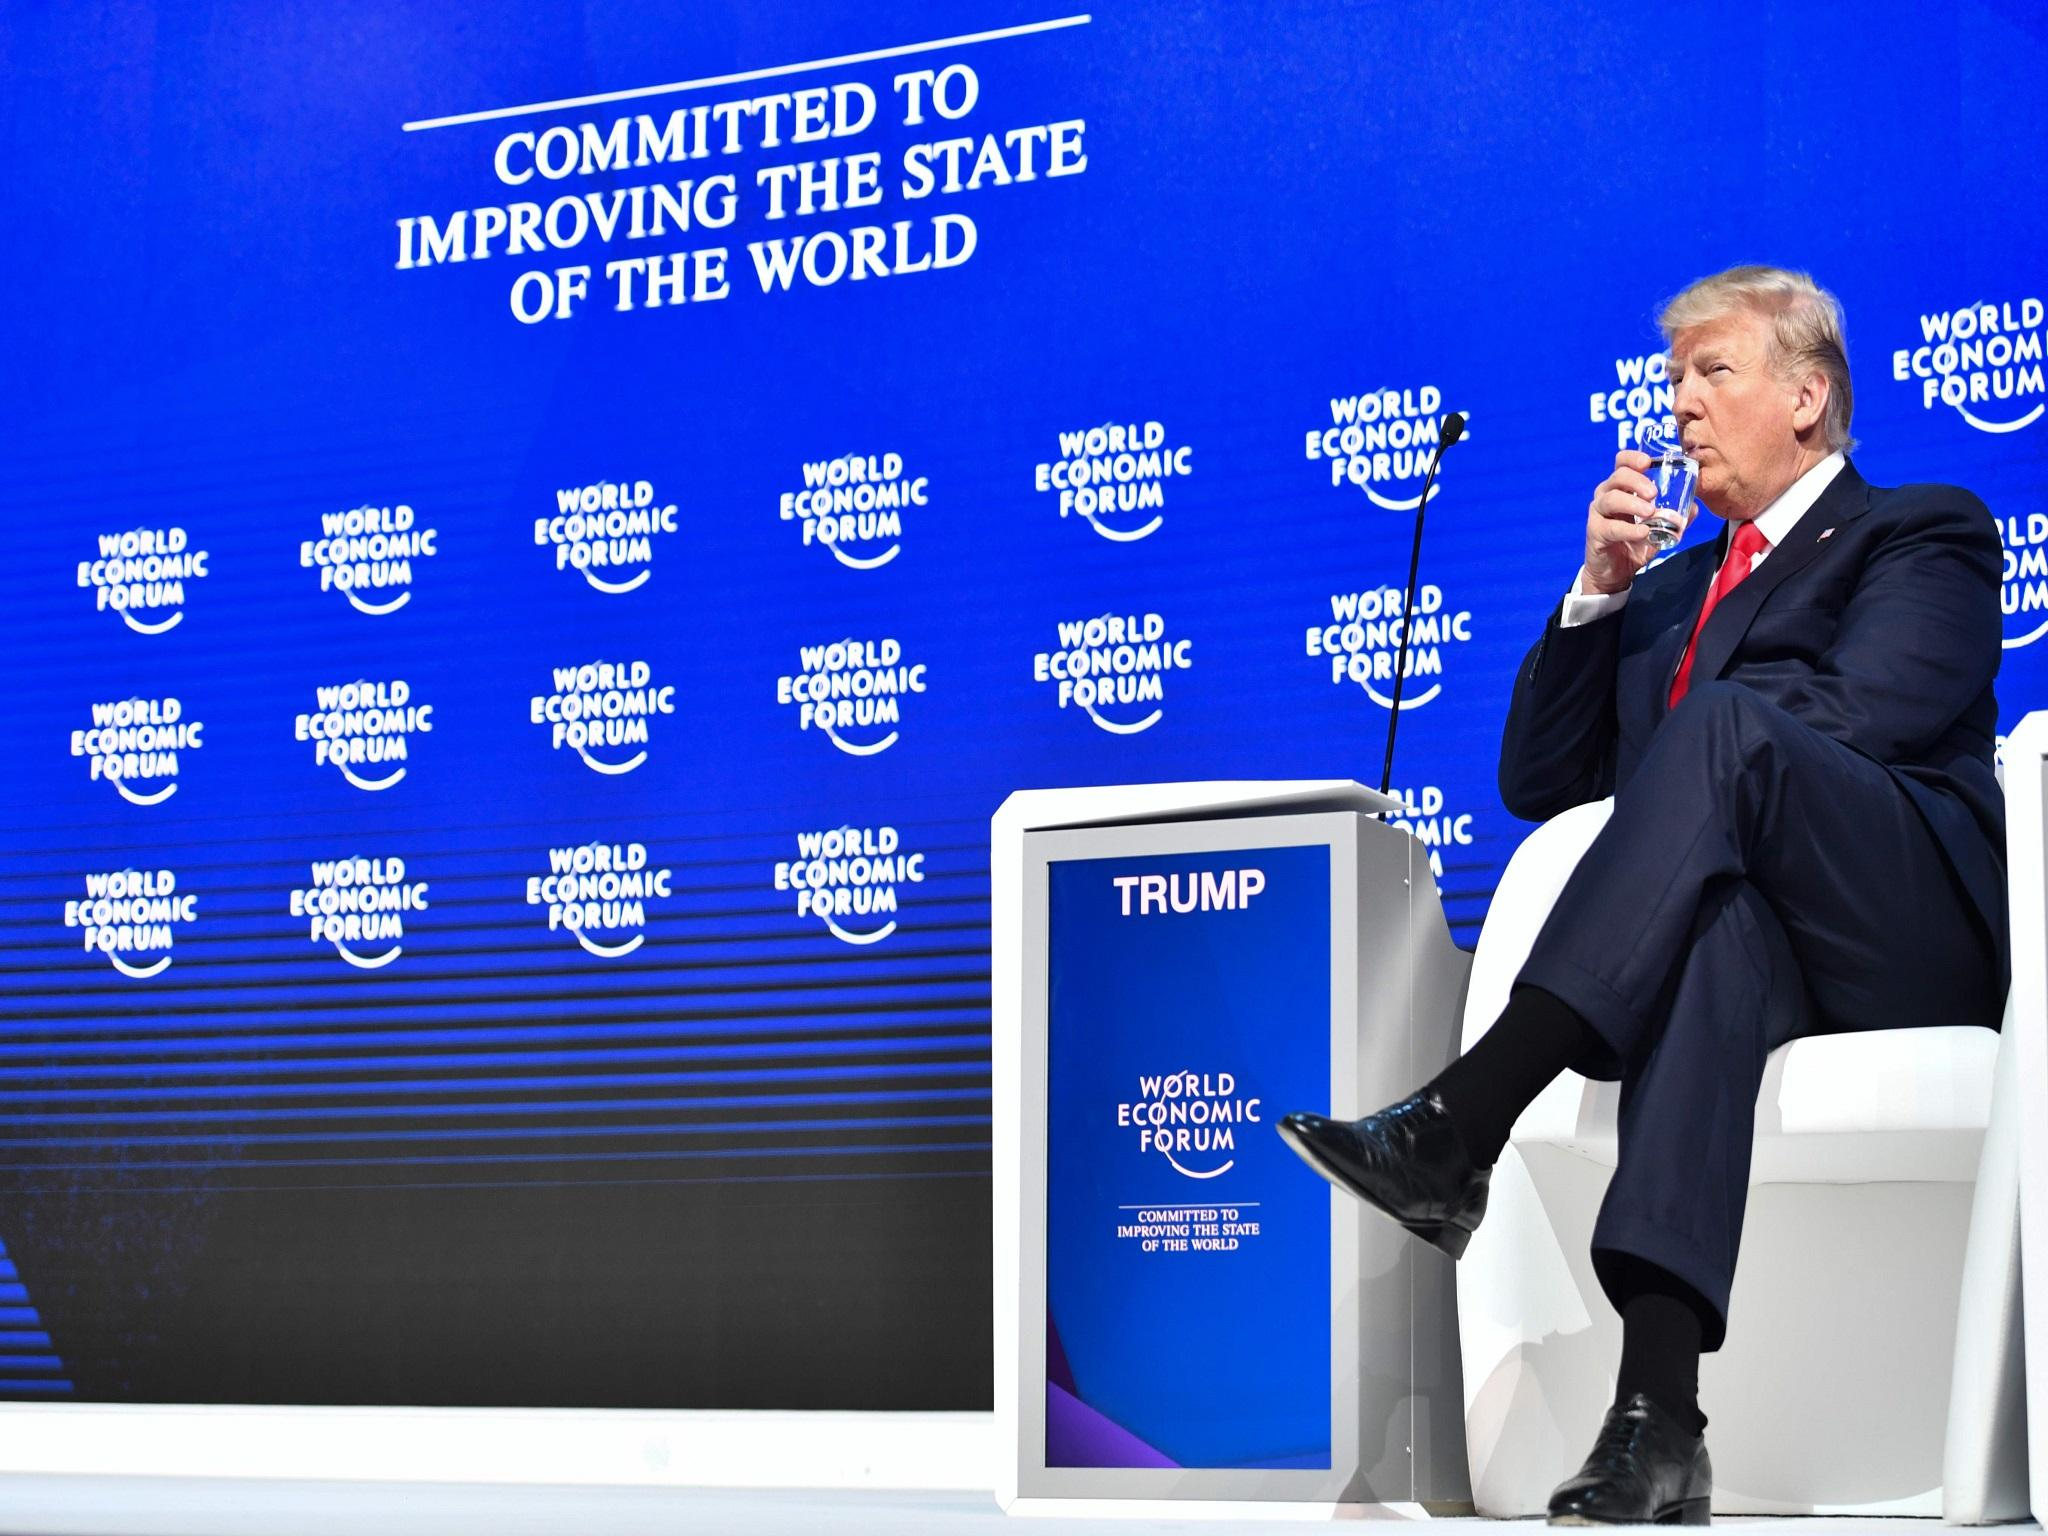 Trump In Davos 2018 What Us Presidents Speech Means For Prospects Wiring A Table Saw Electrical Diy Chatroom Home Improvement Forum Of Global Trade War The Independent